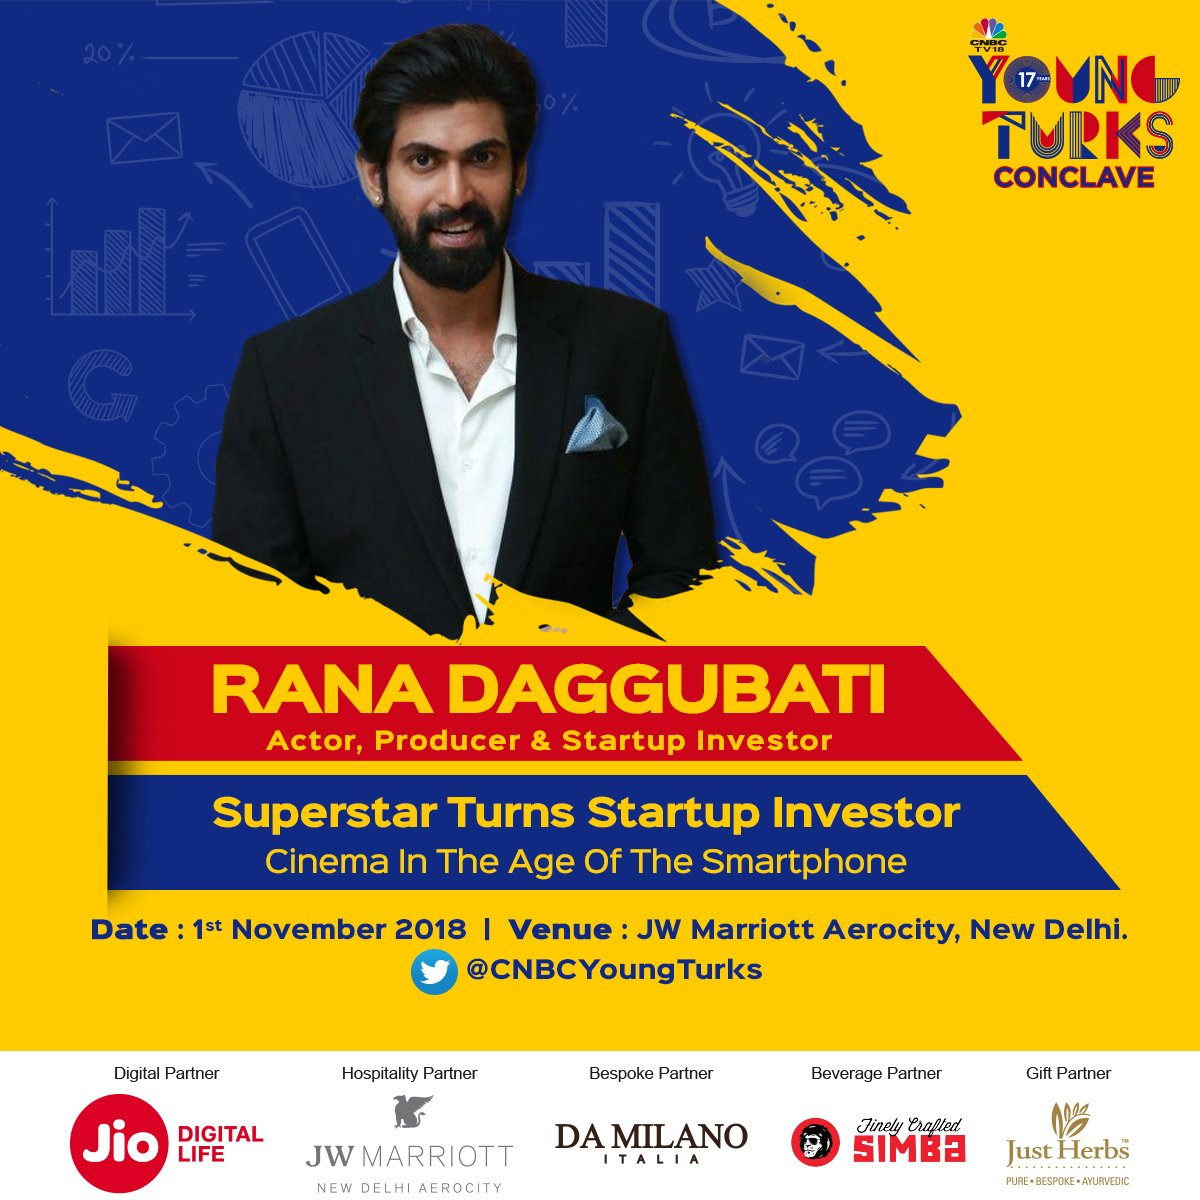 The superstar turned startup investor? Meet @RanaDaggubati talk about cinema in the age of the smartphones at the #YoungTurksConclave on November 1, 2018 @CNBCTV18News @ShereenBhan